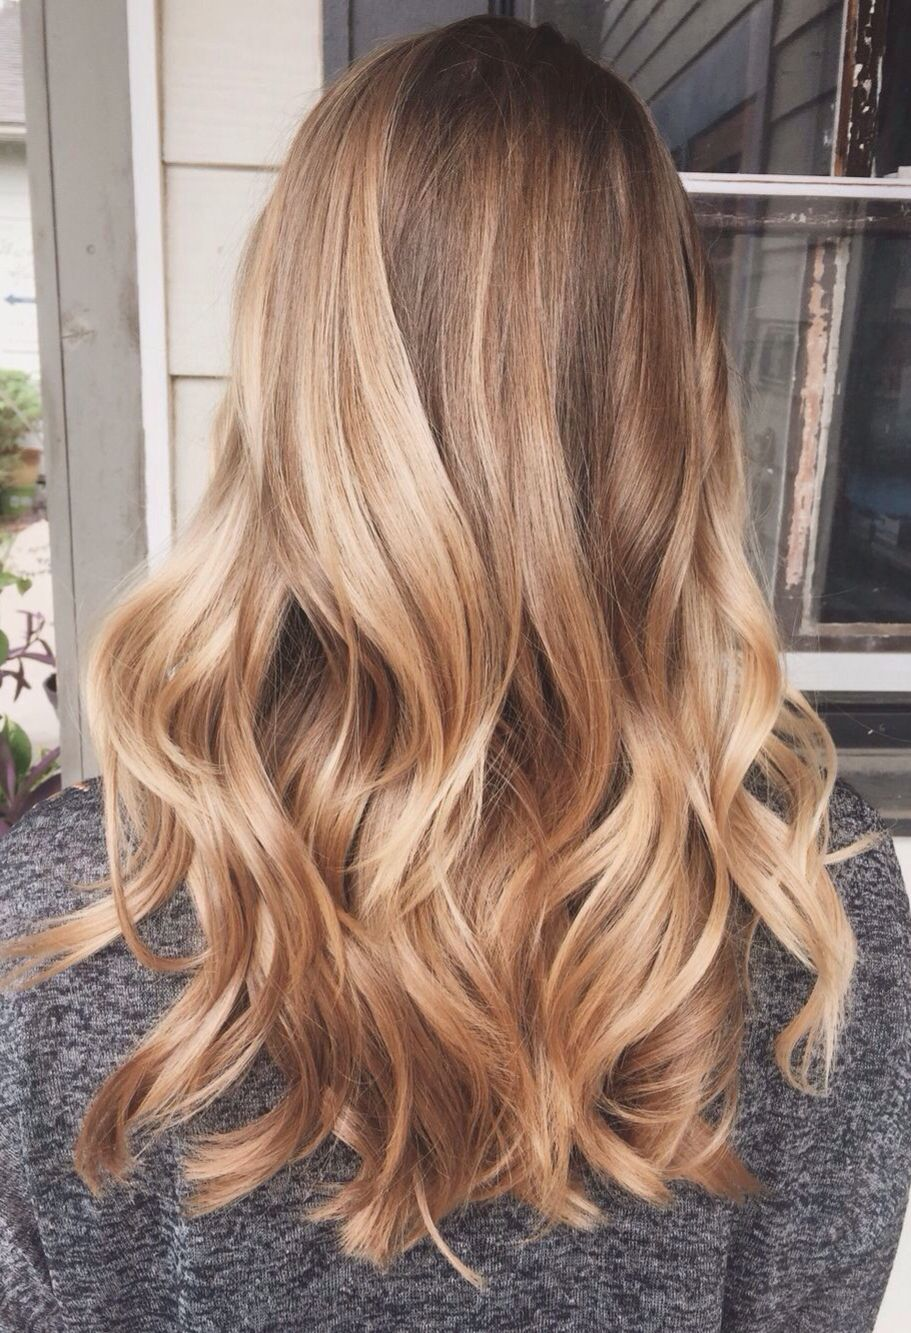 Highlights Wavy Hair Gorgeoushair Httperoticwadewisdomtumblr